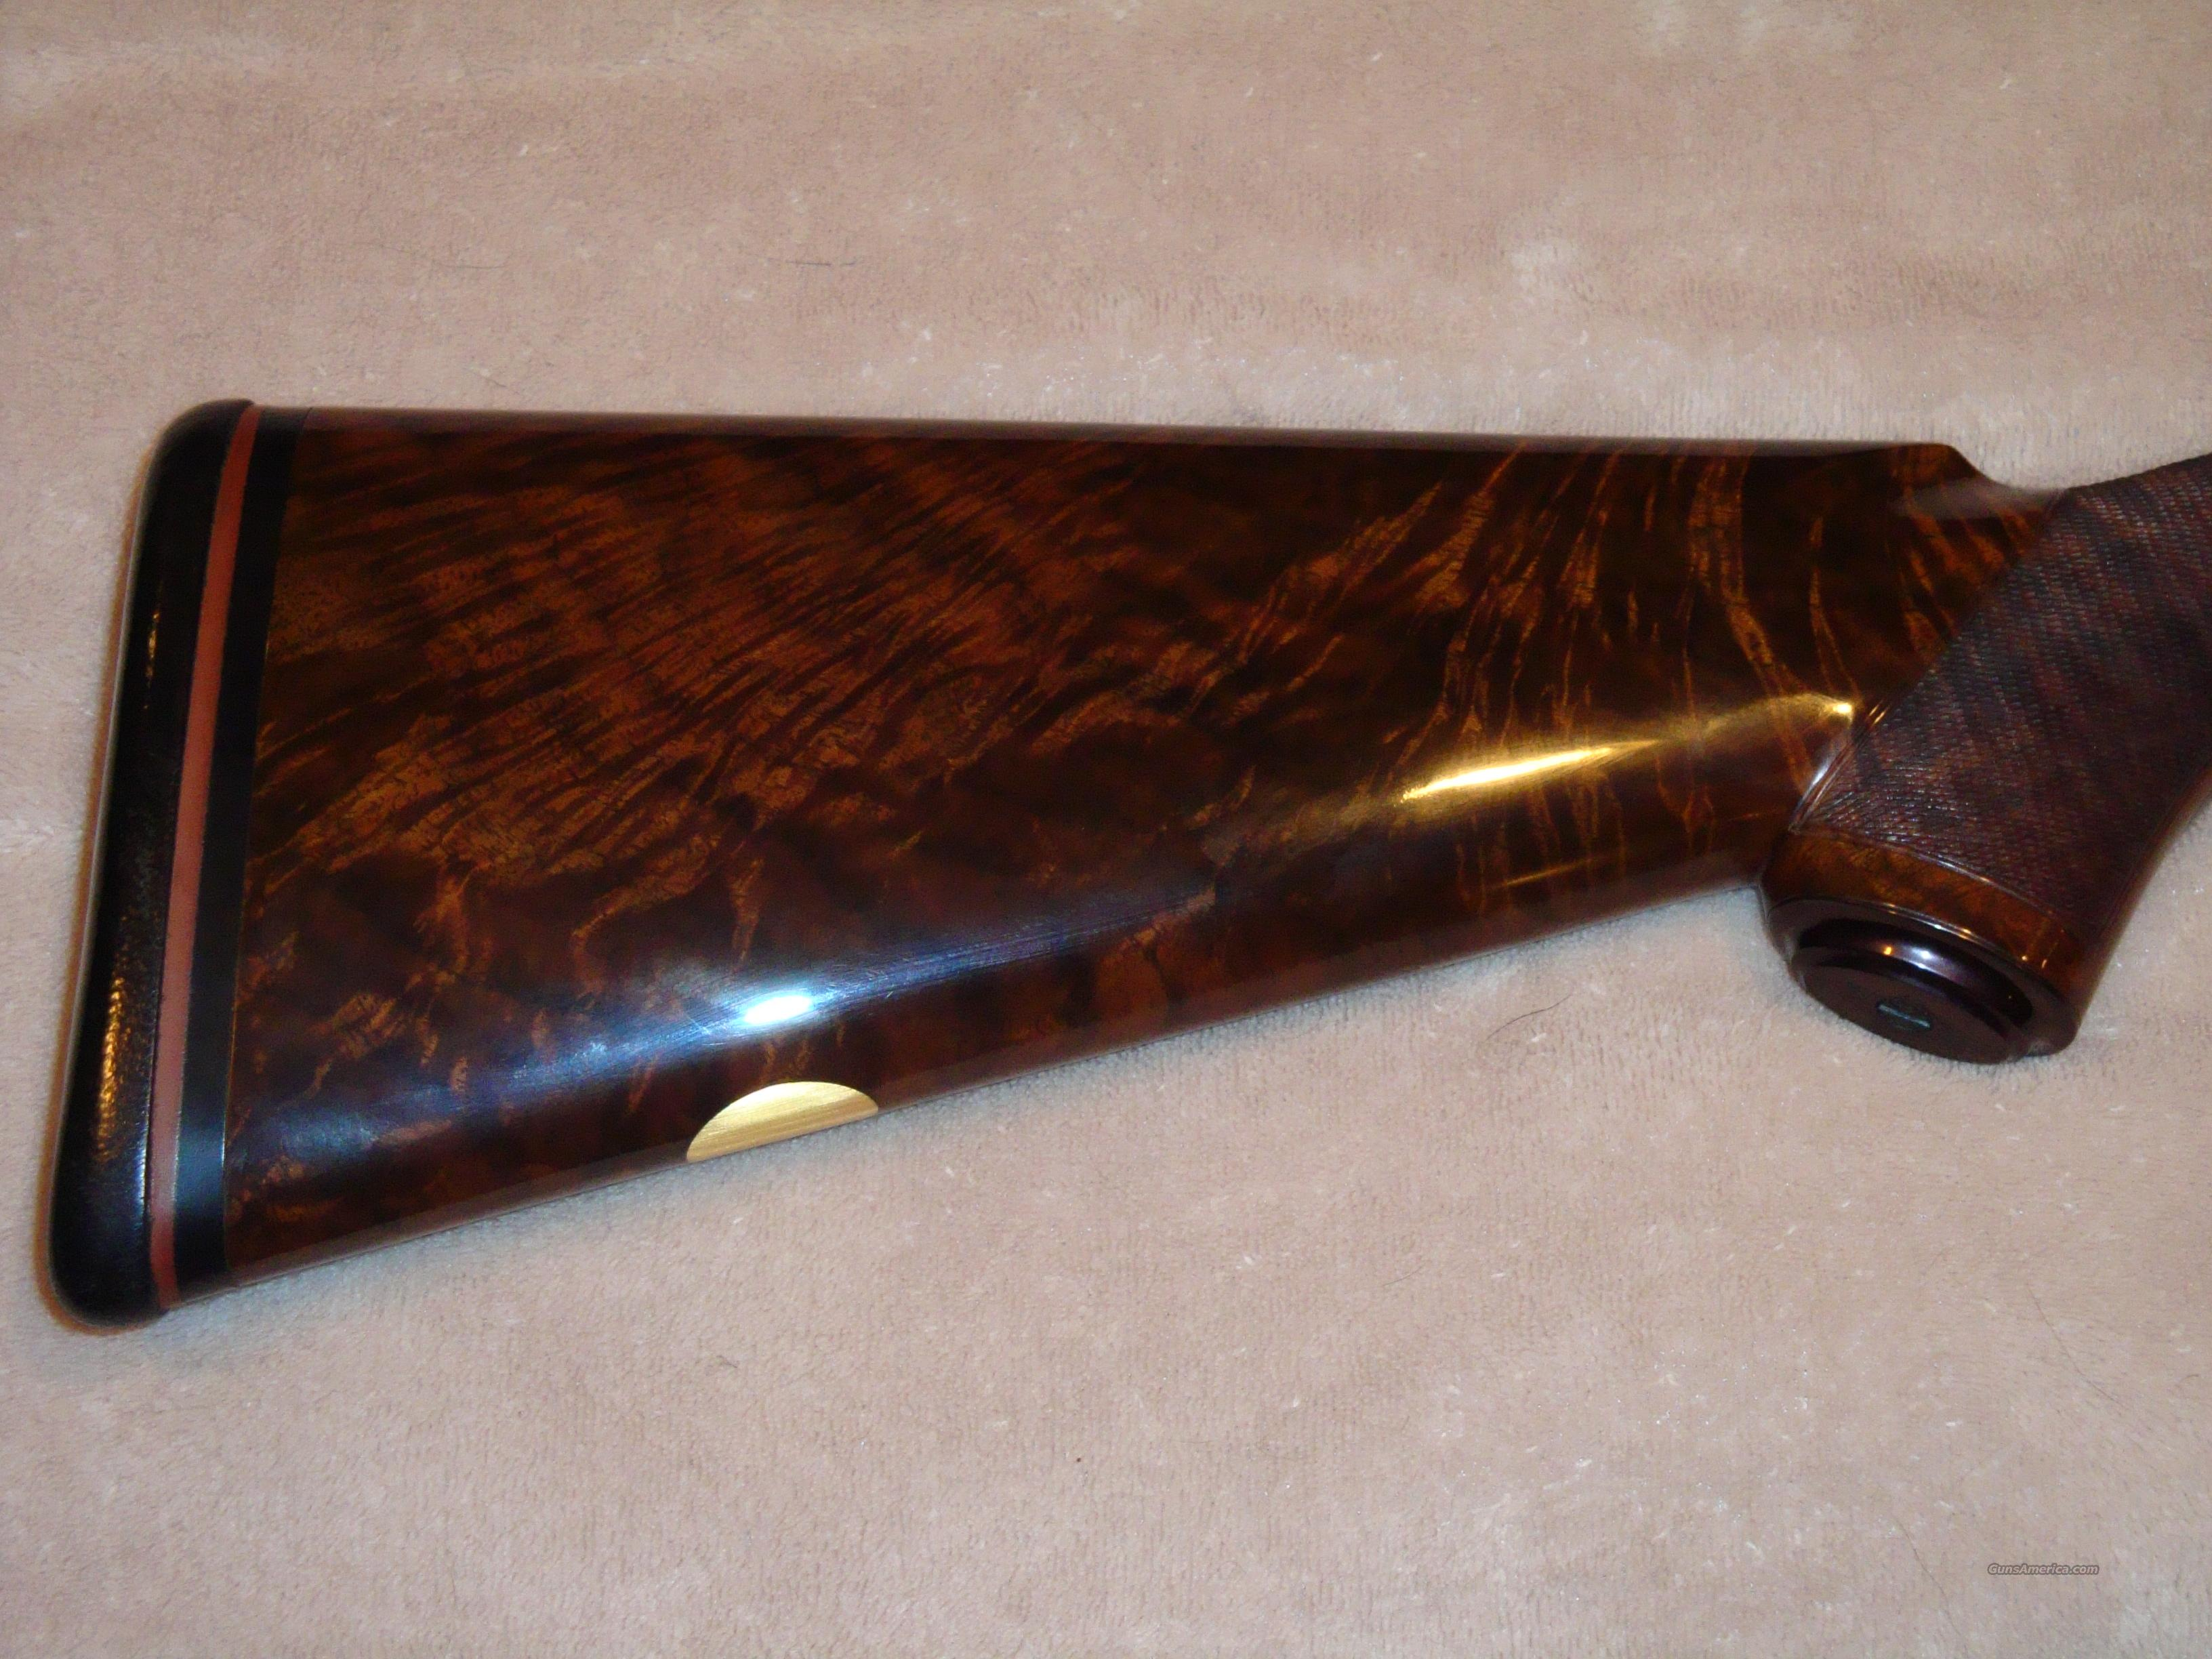 CSMC Model 21 28 Gauge  Guns > Shotguns > Connecticut (Galazan) Shotguns